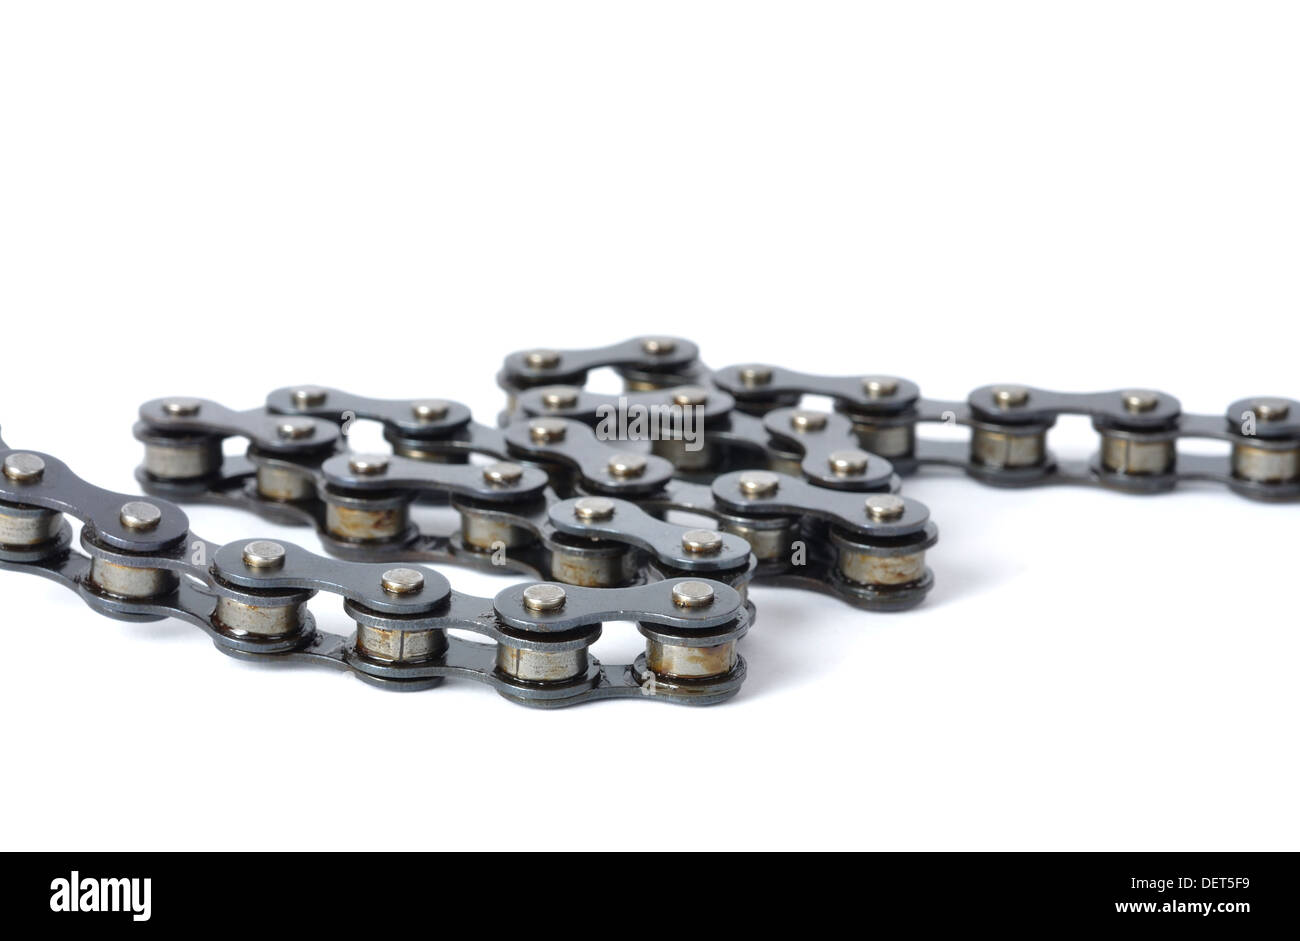 Bicycle Chain - Stock Image